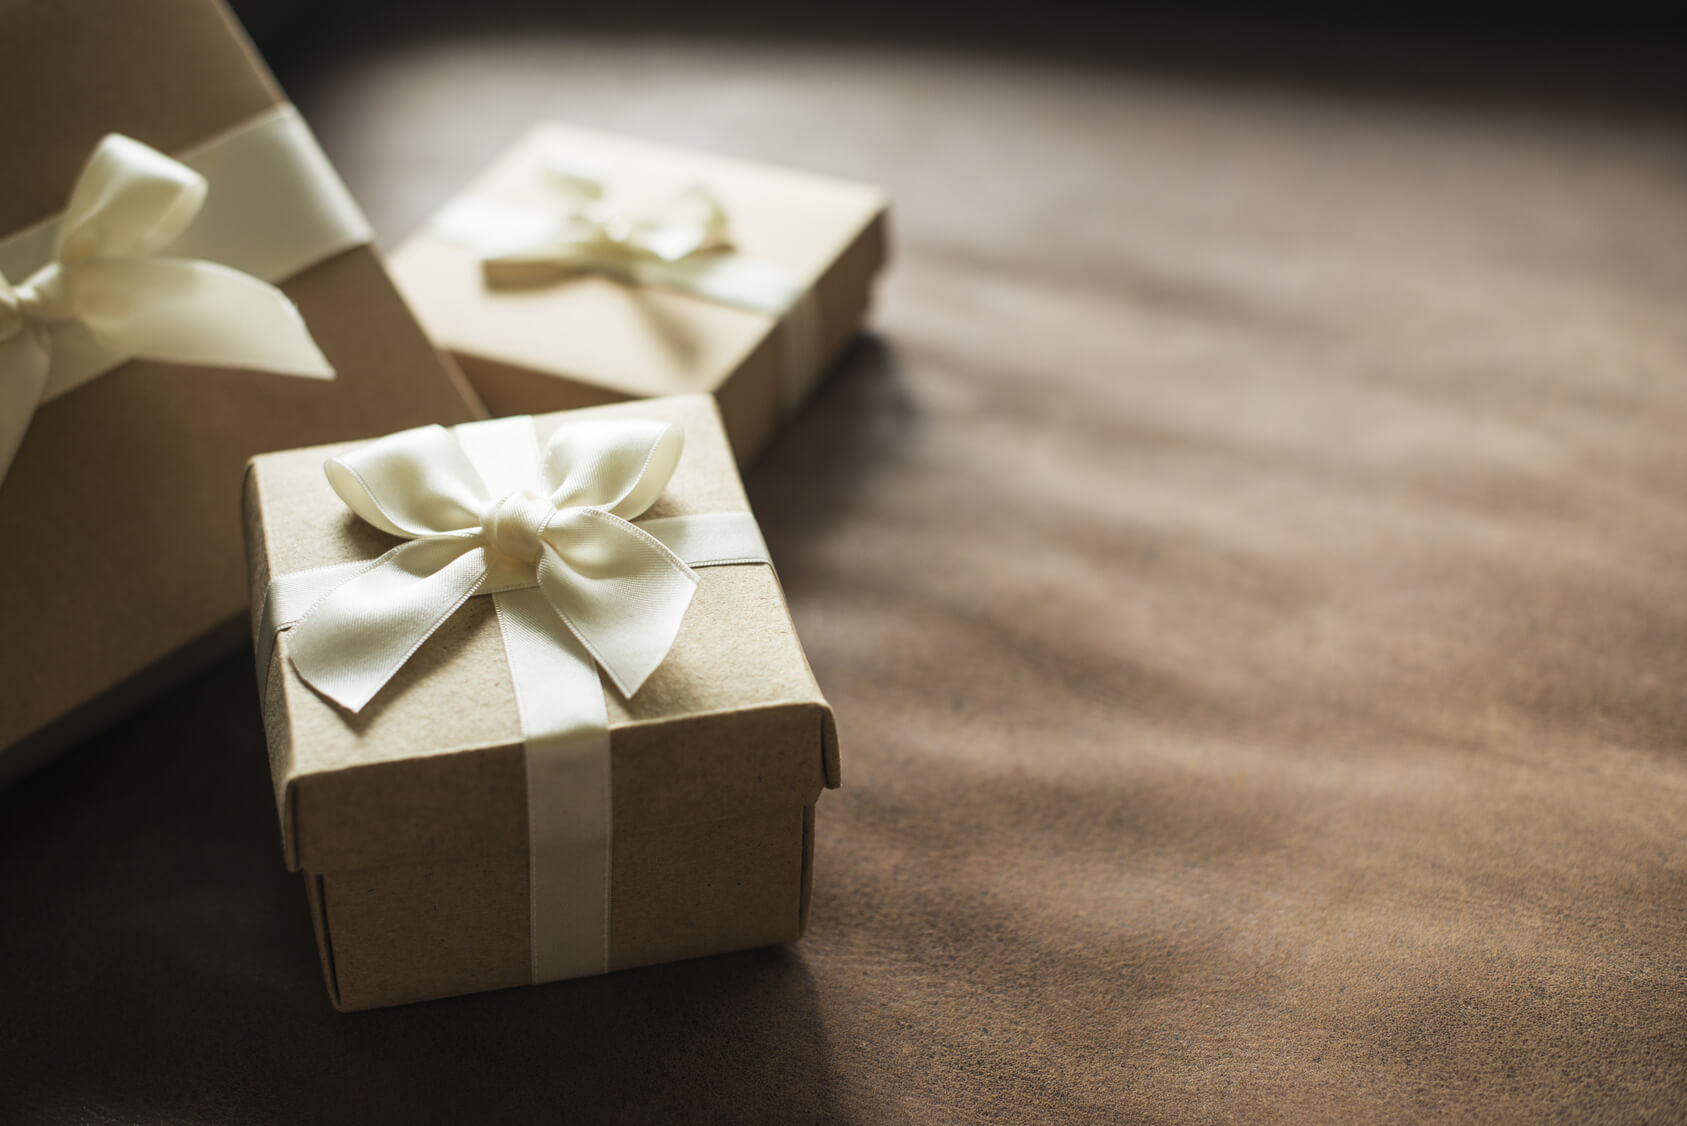 What You Should Know About Gifting Real Estate